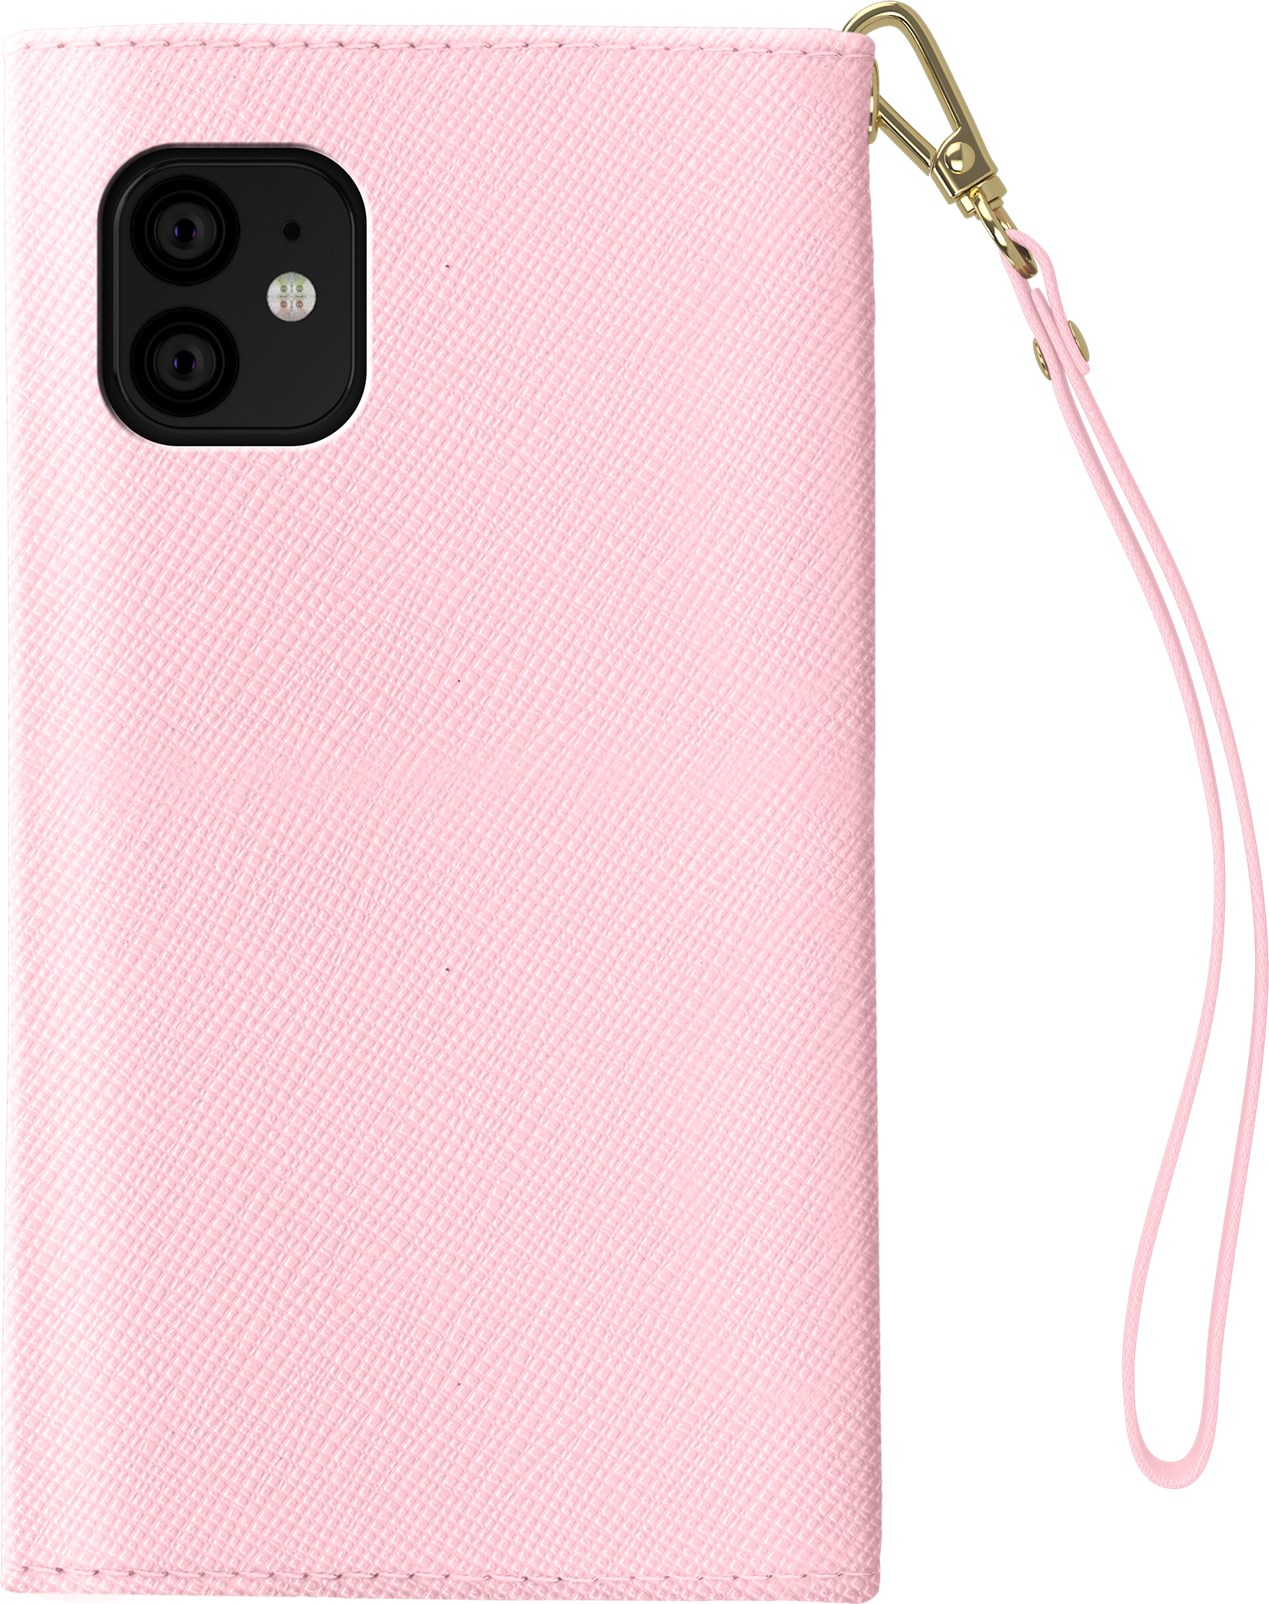 iDeal of Sweden Ideal Mayfair Clutch Iphone 11 Pink